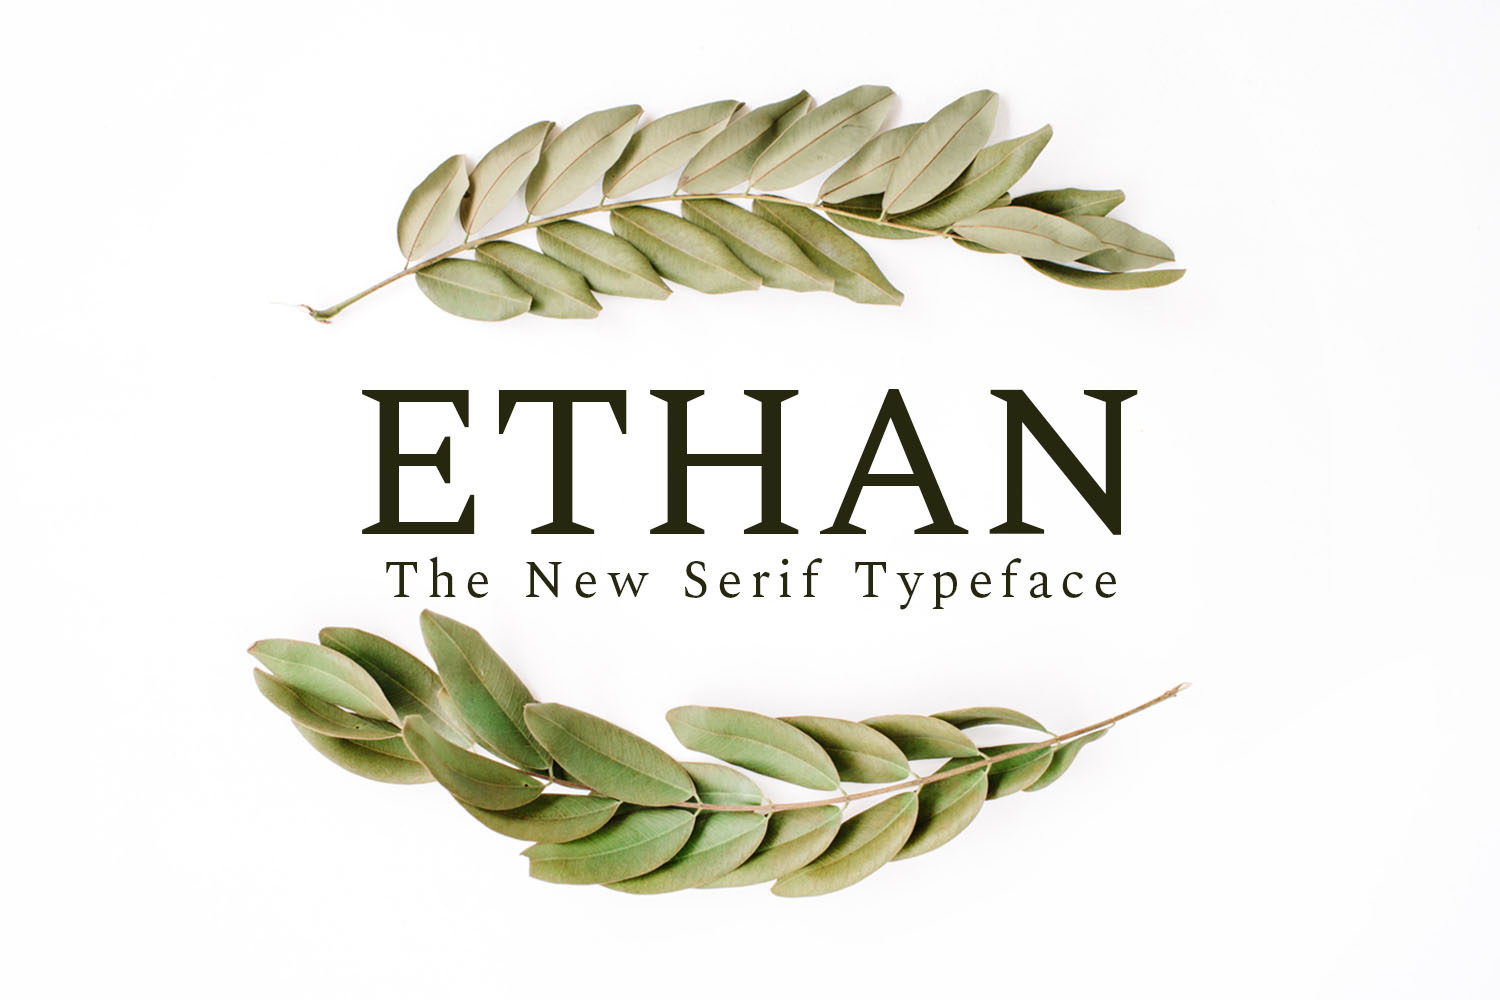 Ethan Serif 8 Font Family Pack example image 1